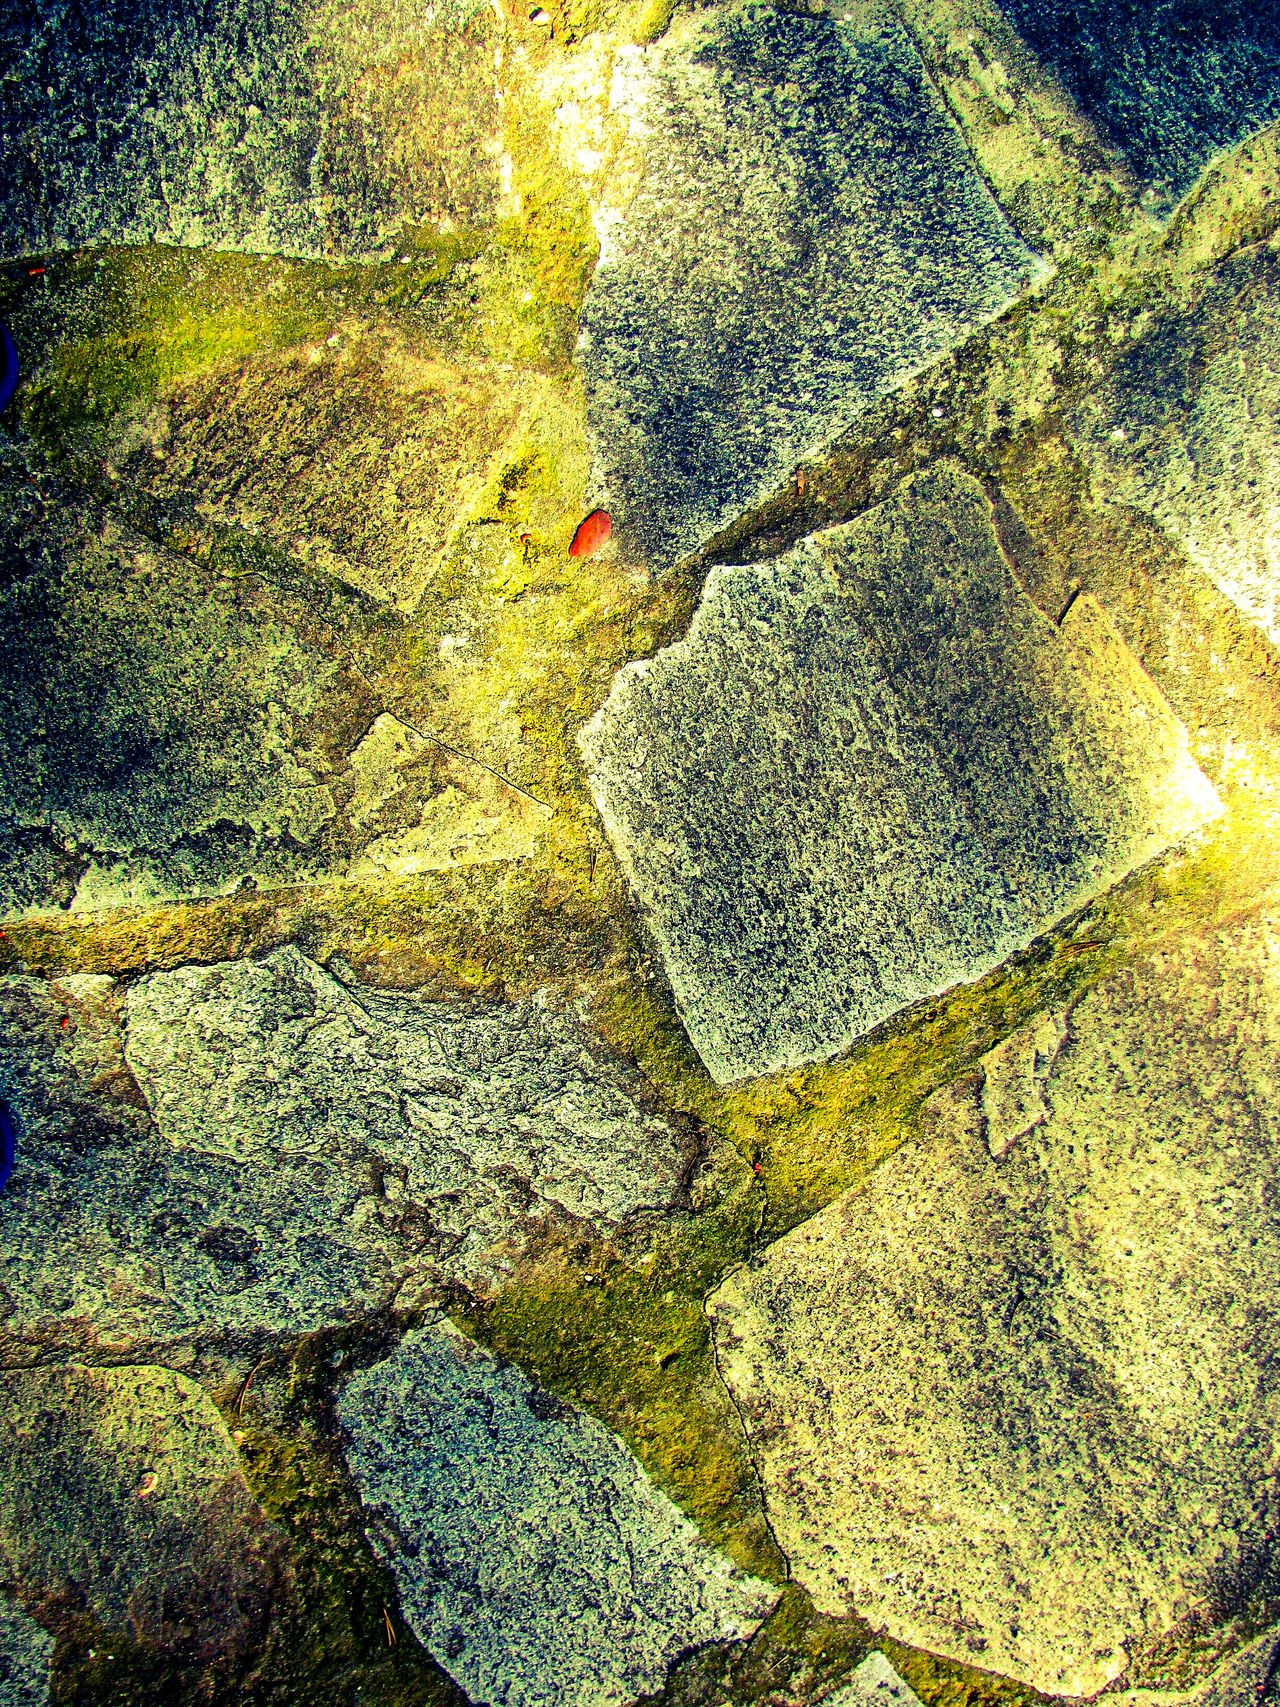 Slab Slabs Granite Stone Stones Yard Tree Shadows Light And Shadow Abstract Pattern Pattern Pieces Pattern, Texture, Shape And Form Patterns & Textures Patterns Architecture The Architect - 2016 EyeEm Awards Structure Structural Pattern Structural Element Pavement Slabs Backgrounds Yard Slabs Pavement Pavement Patterns Pavement Stone Bricks